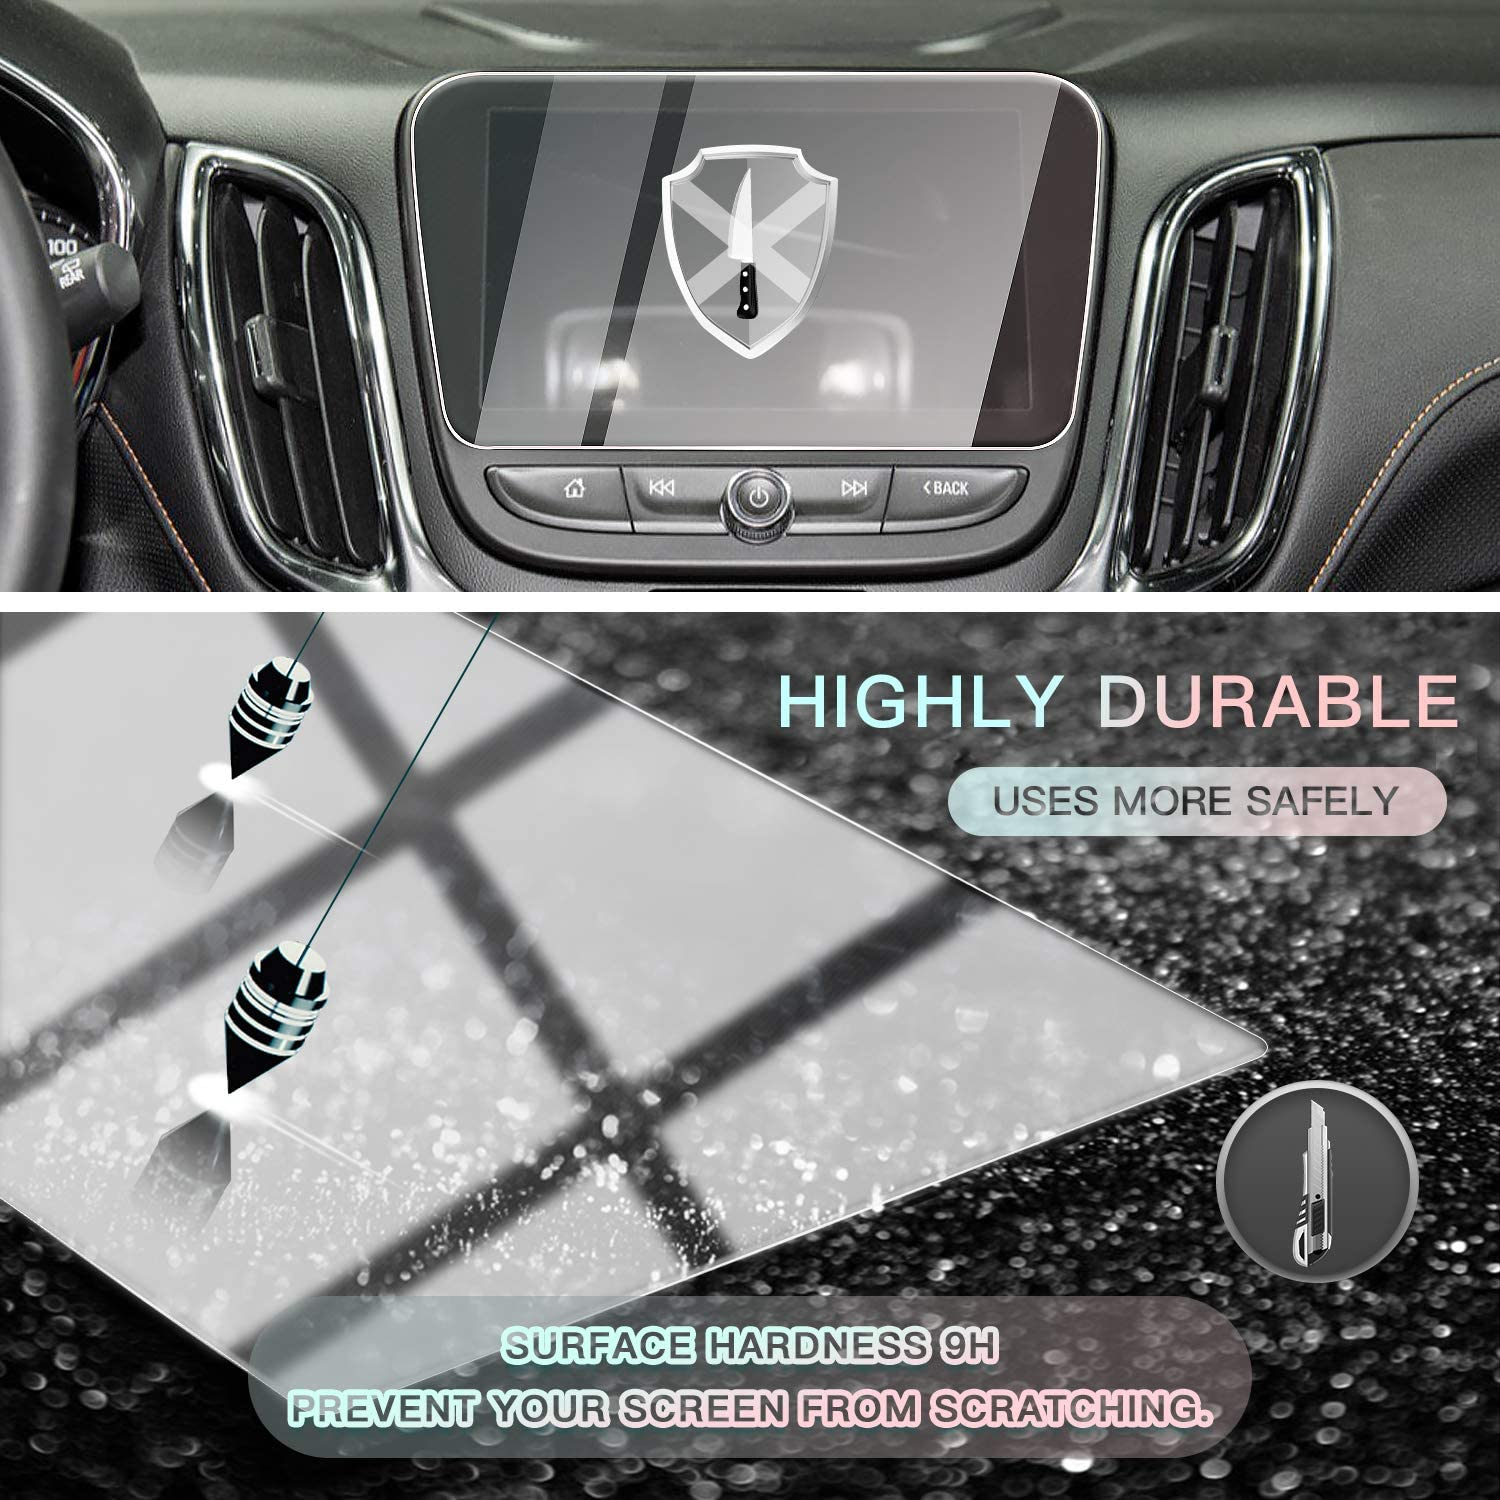 CDEFG Car Screen Protector Center Control Navigation Touch Screen Protector for 2011-2017 Equinox LT//Malibu//Volt Tempered Glass HD Scratch Resistance 7IN